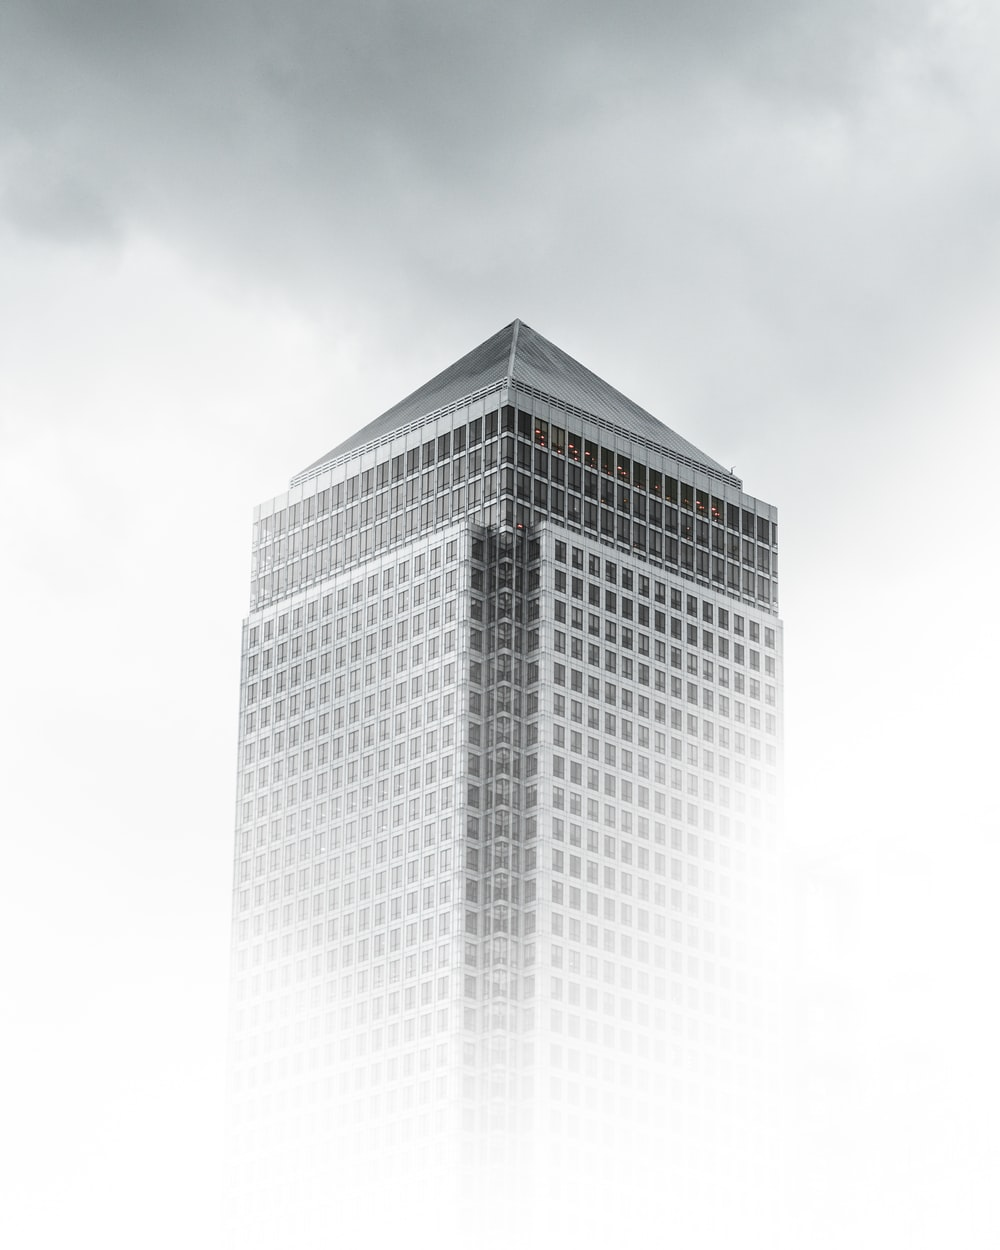 worm's-eye view photography of white and gray concrete building under cloudy sky